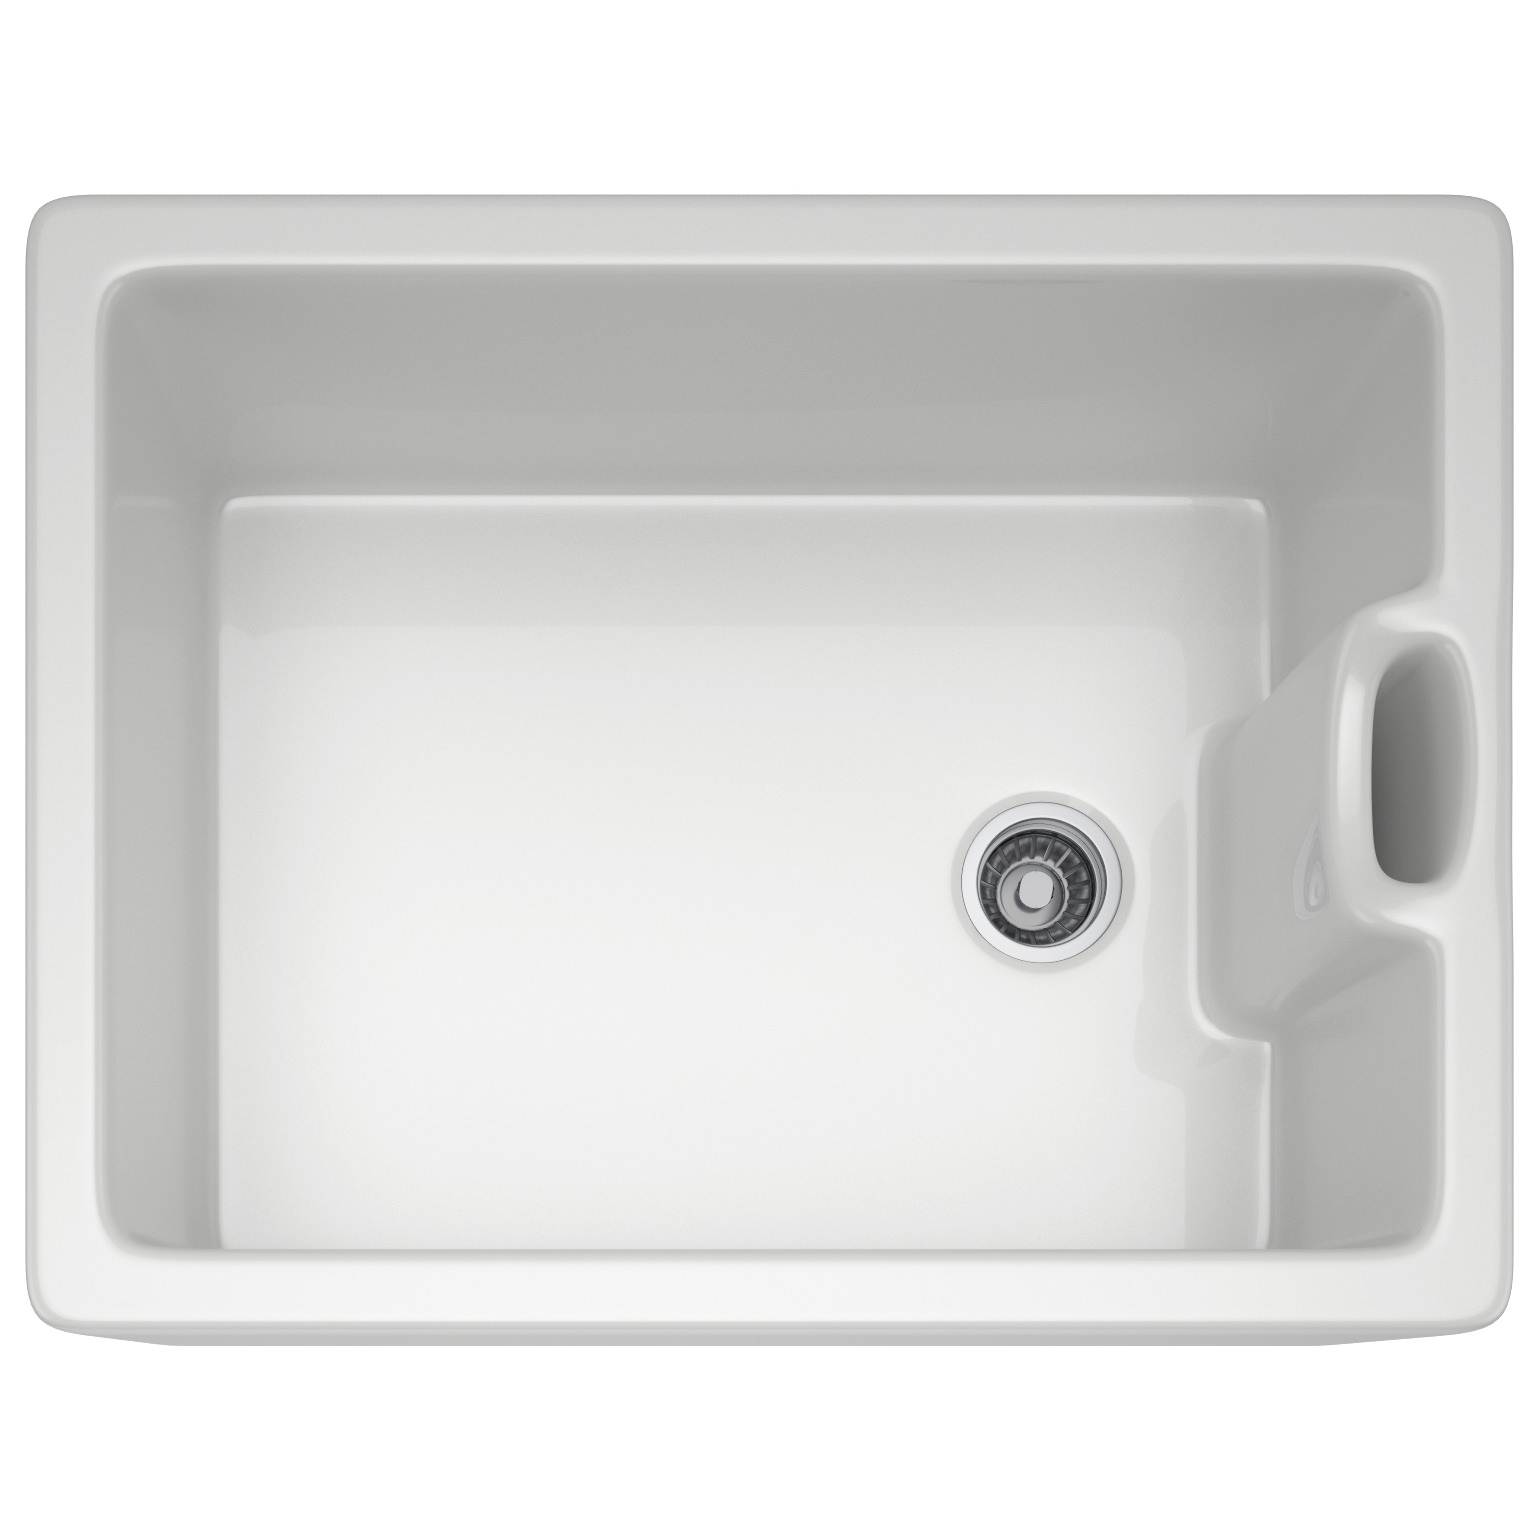 Franke Belfast BAK 710 Ceramic White 1.0 Bowl Kitchen Sink 130.0050 ...